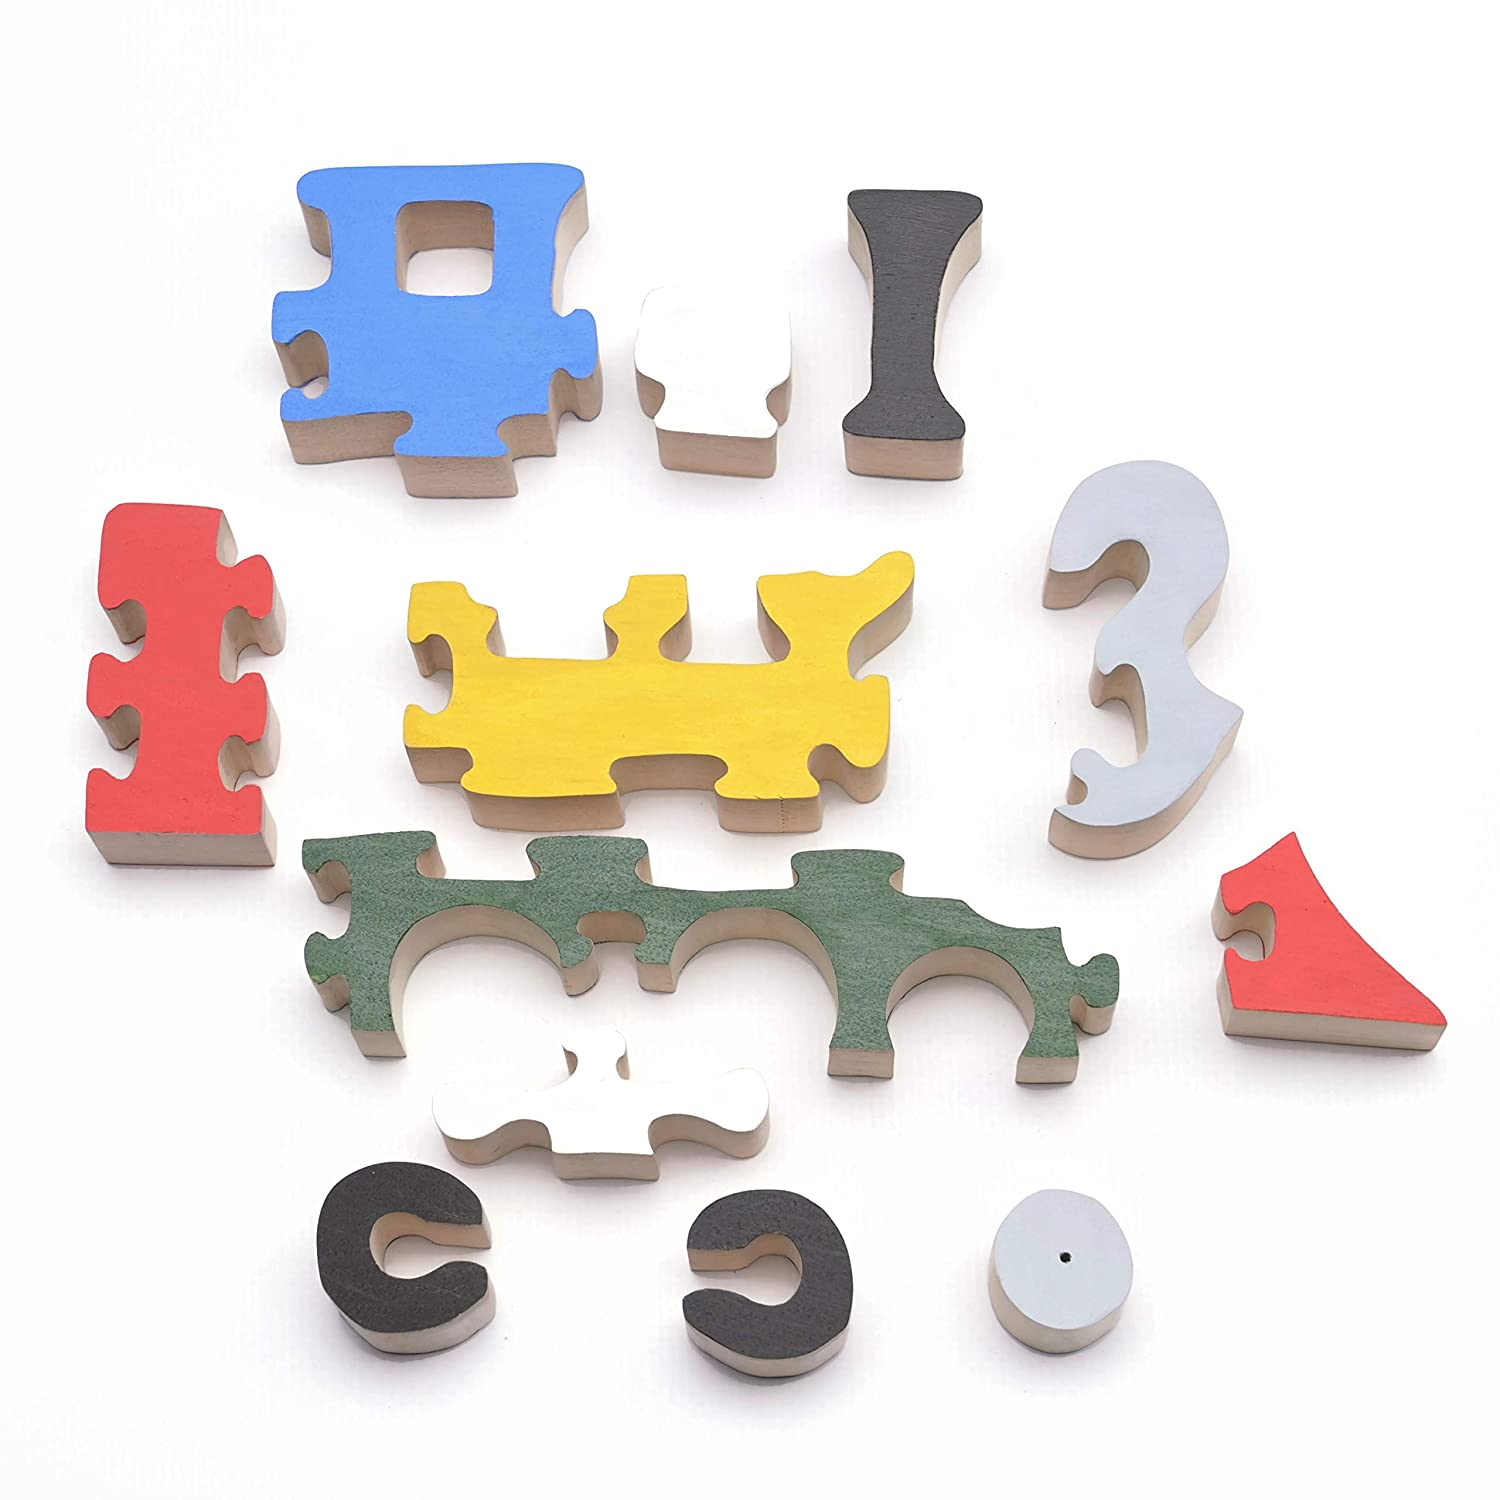 Wooden Jigsaw Puzzles Toy trains Wooden Nursery Kids Room Decor Educational Toy Baby Shower Gift